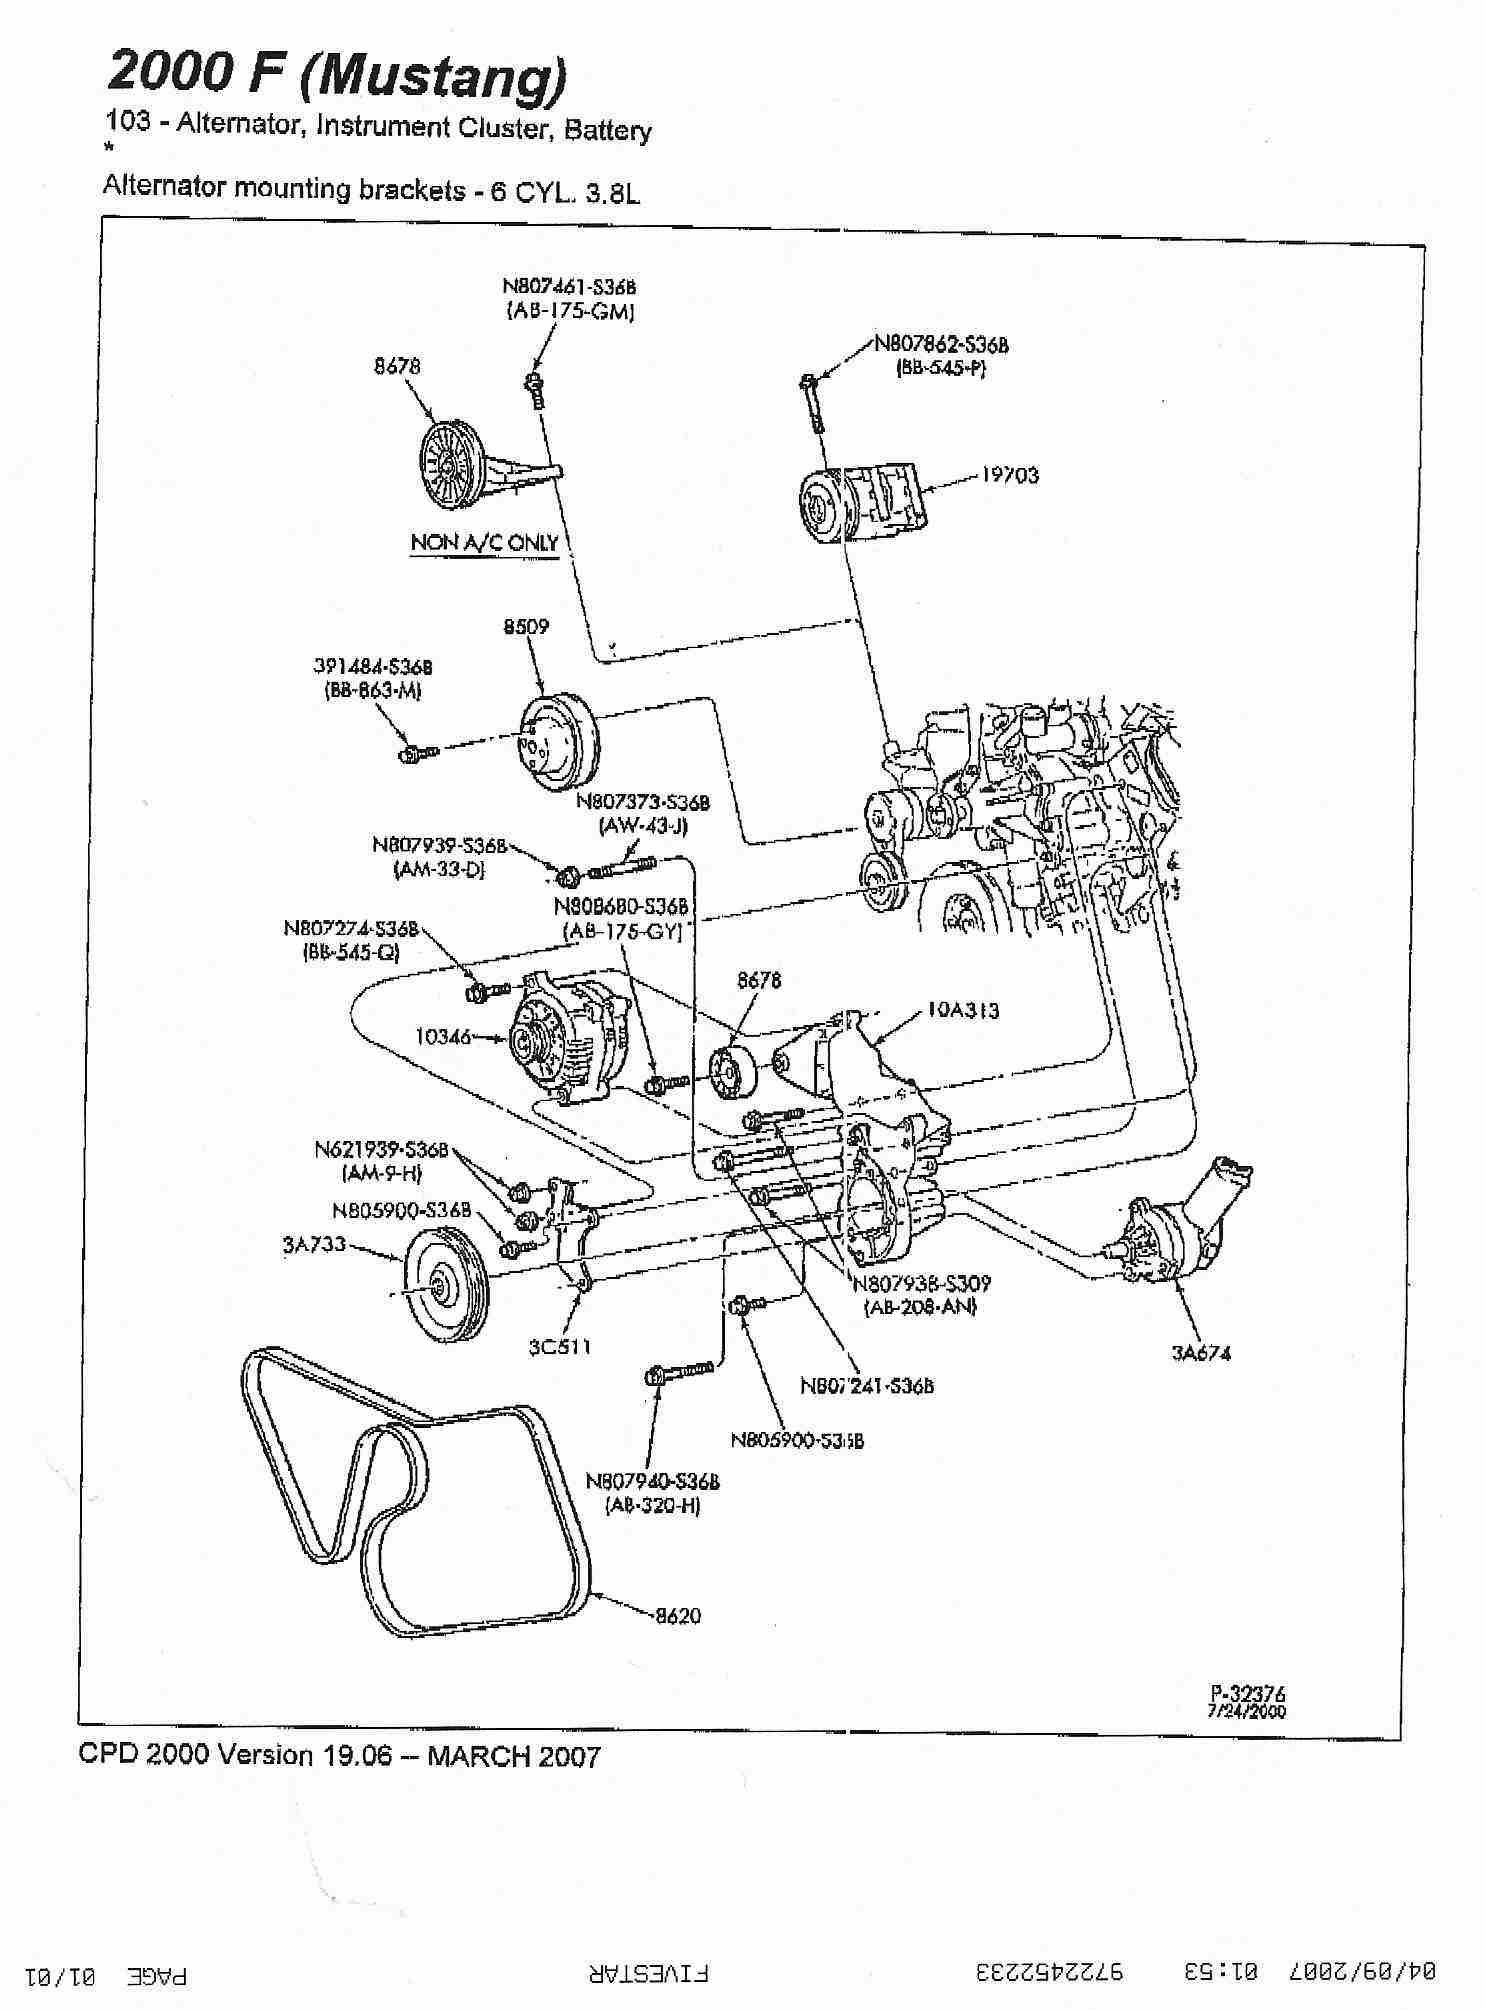 2012 Ford Mustang V6 Engine Diagram Download Wiring Diagrams 1990 4 Cylinder 2003 Overheating And A C Issues Forum Rh Allfordmustangs Com V8 Manual